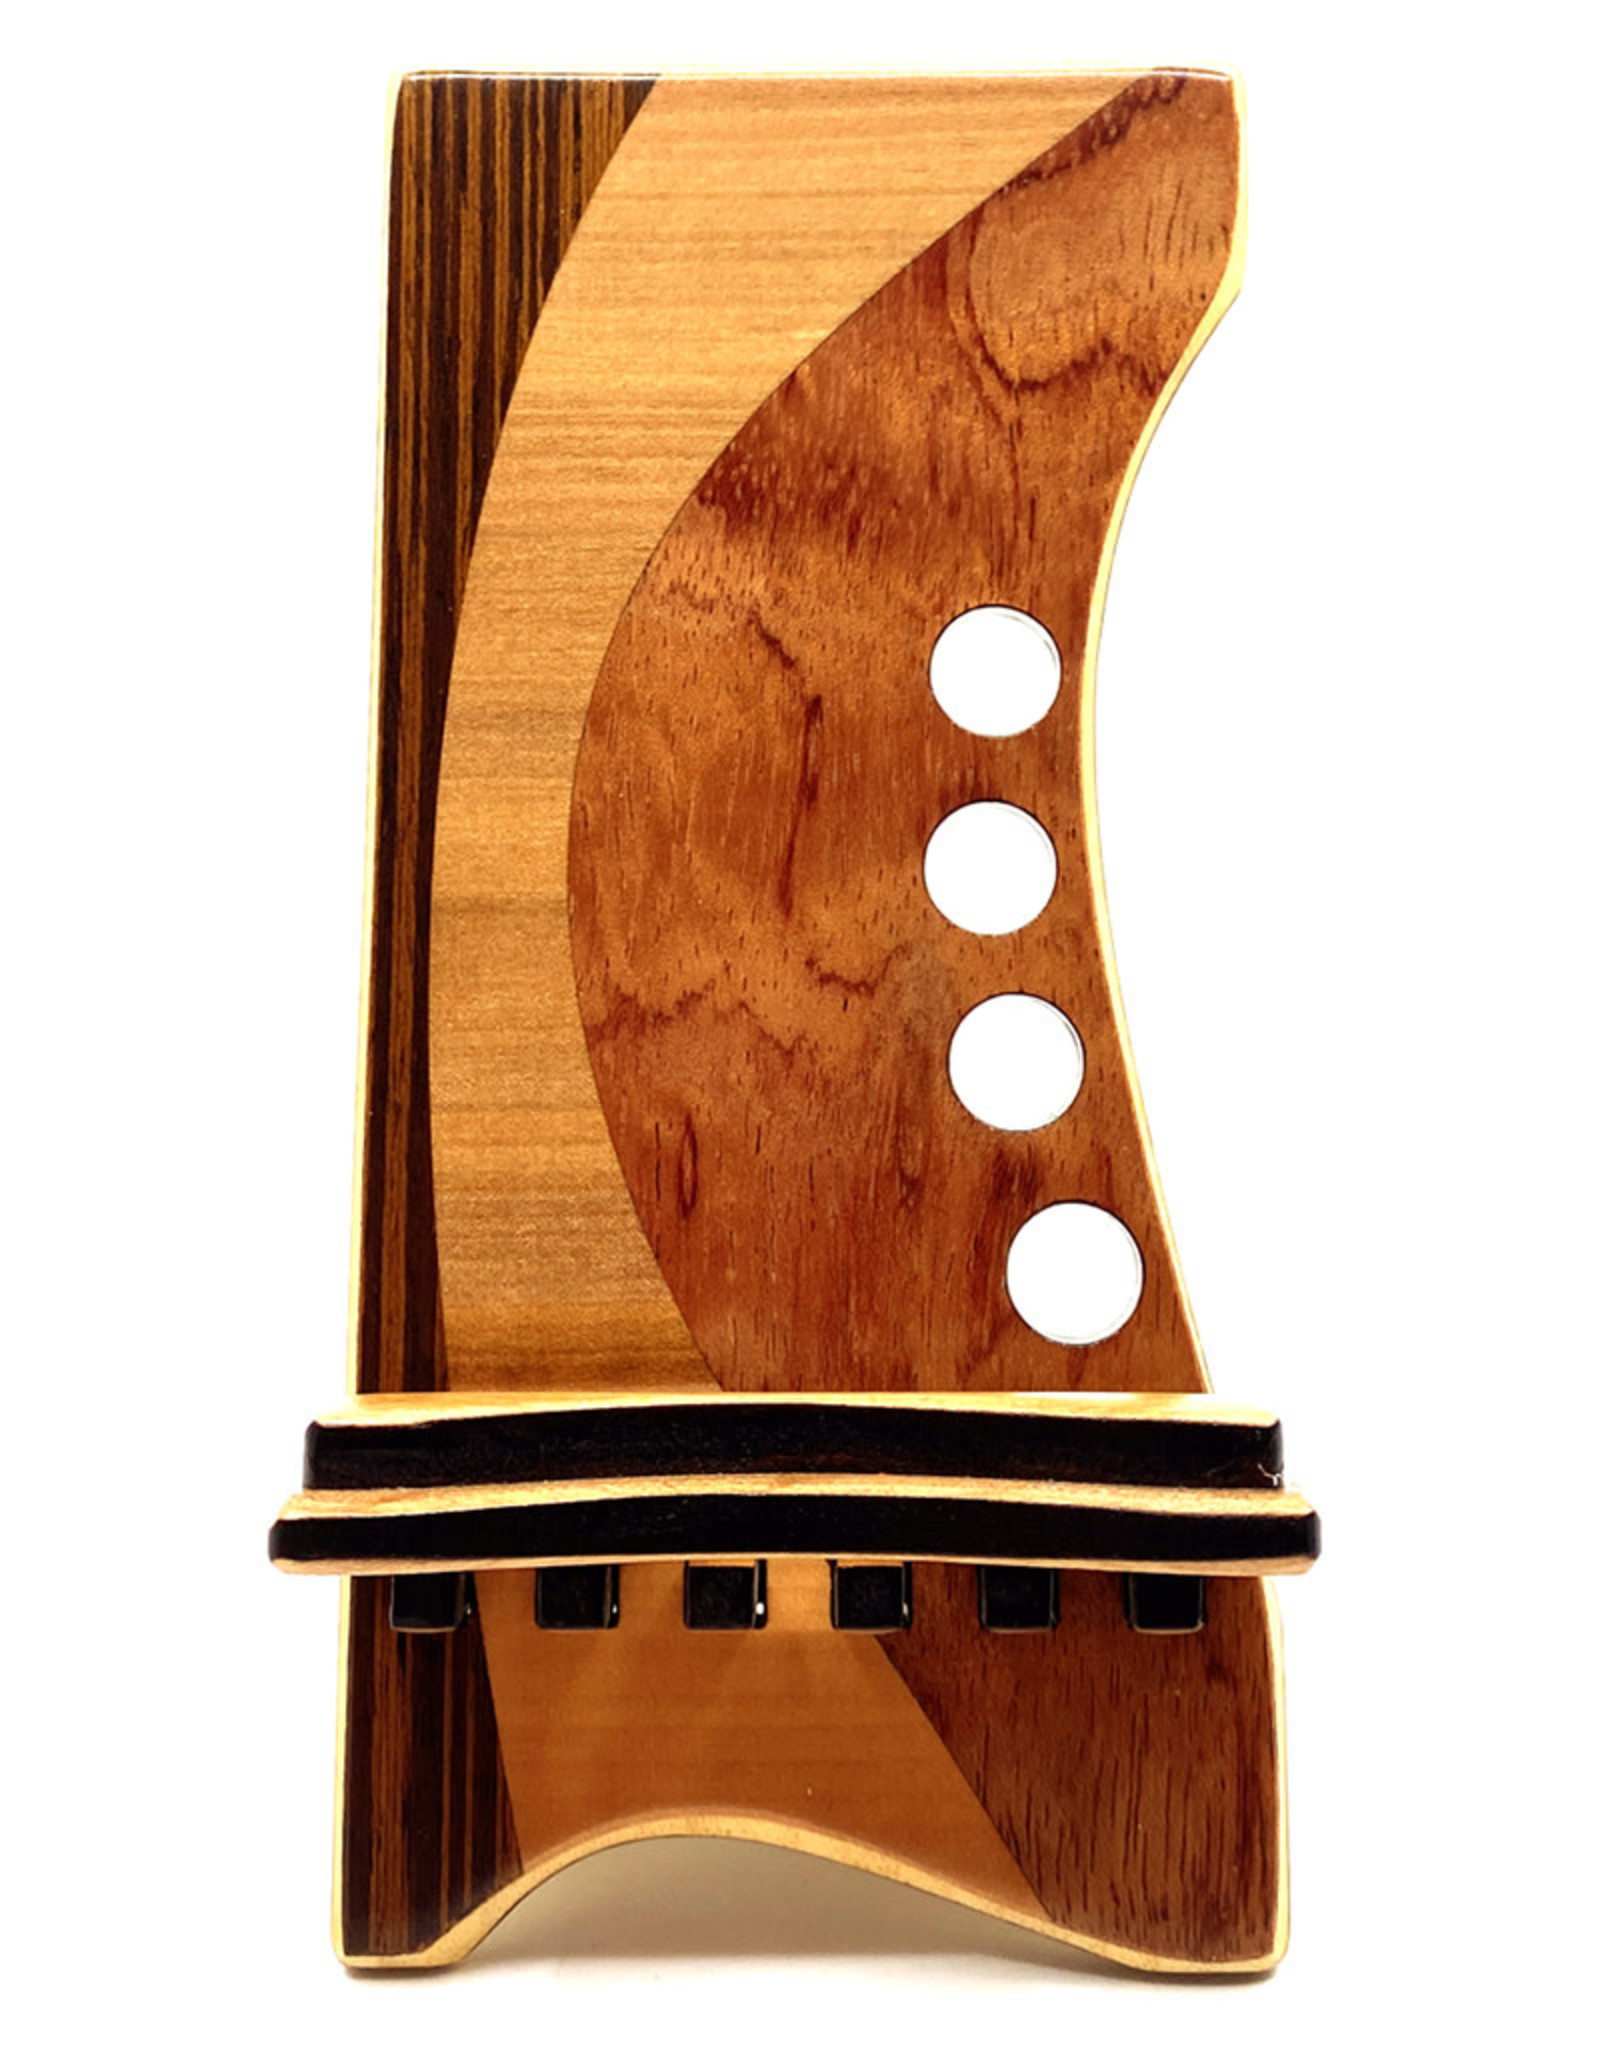 LOST ART WOODWORKS NATURAL WOOD VII MARQUETRY INLAID PHONE STAND